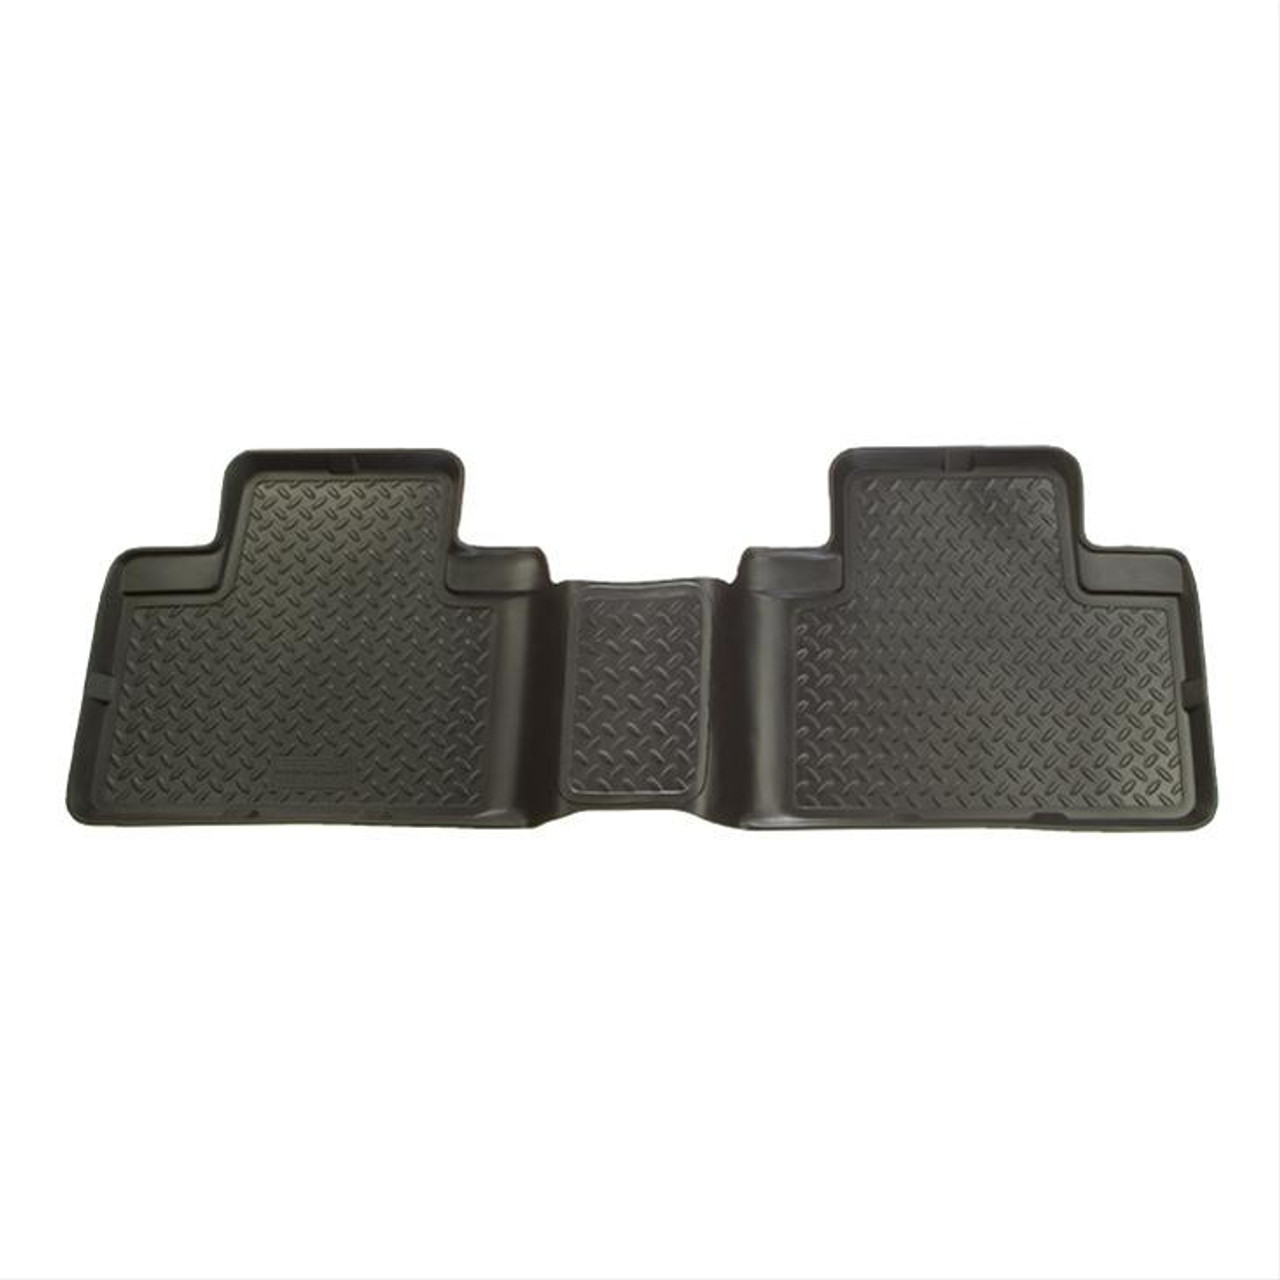 08-12 LIBERTY 2ND SEAT FLOOR LINERS - BLACK